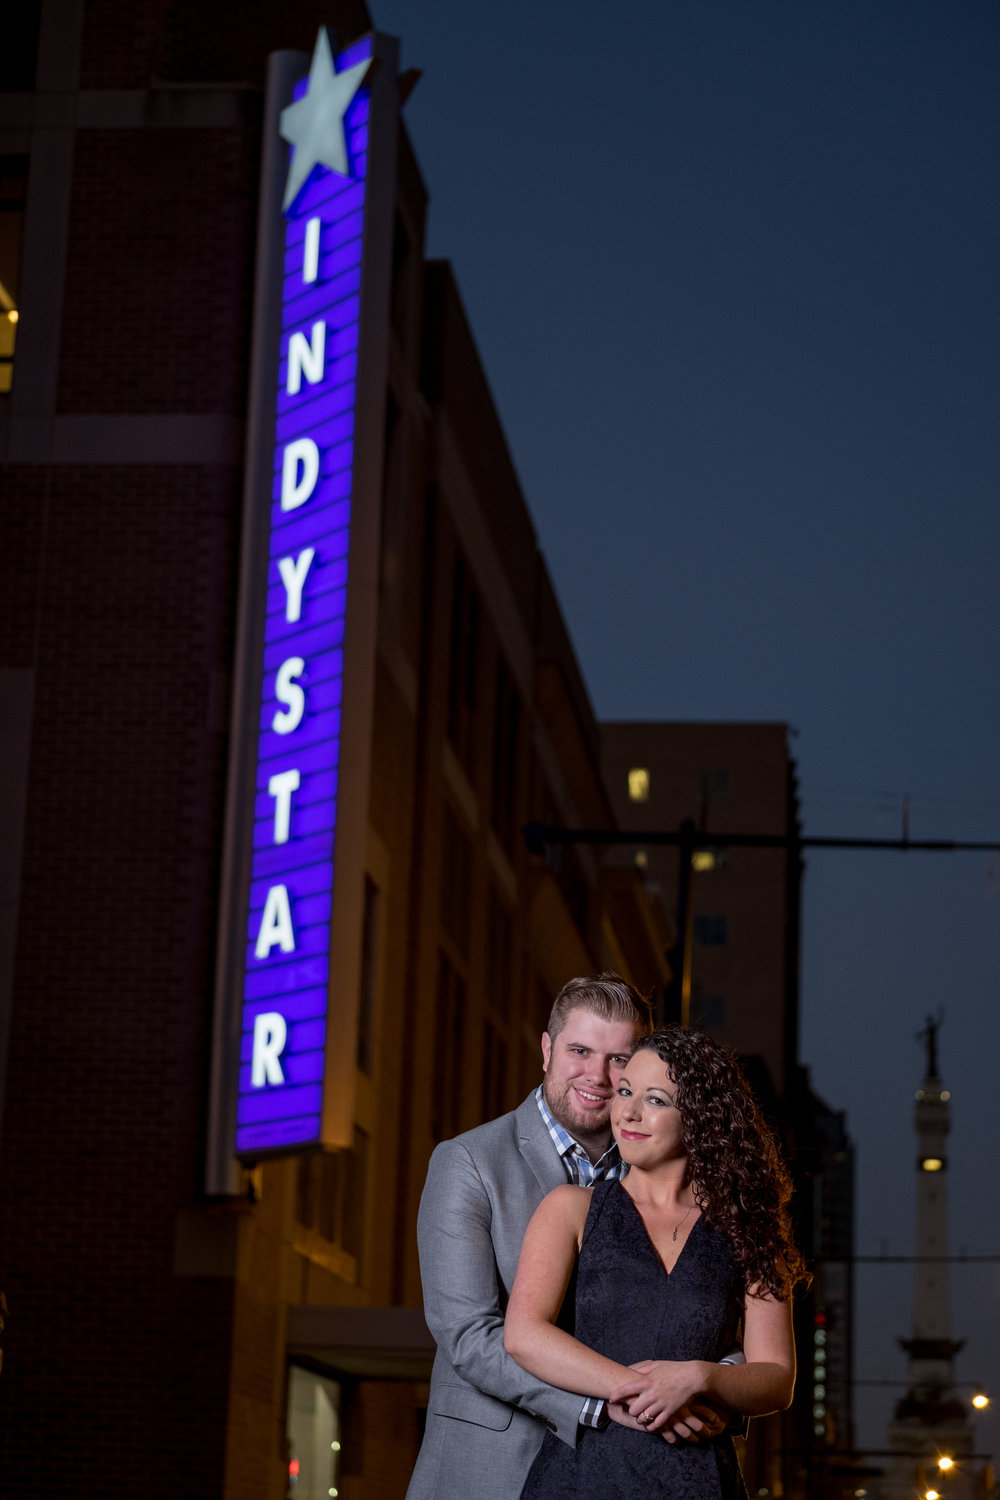 Downtown-Indianapolis-night-engagement-pictures-06.jpg